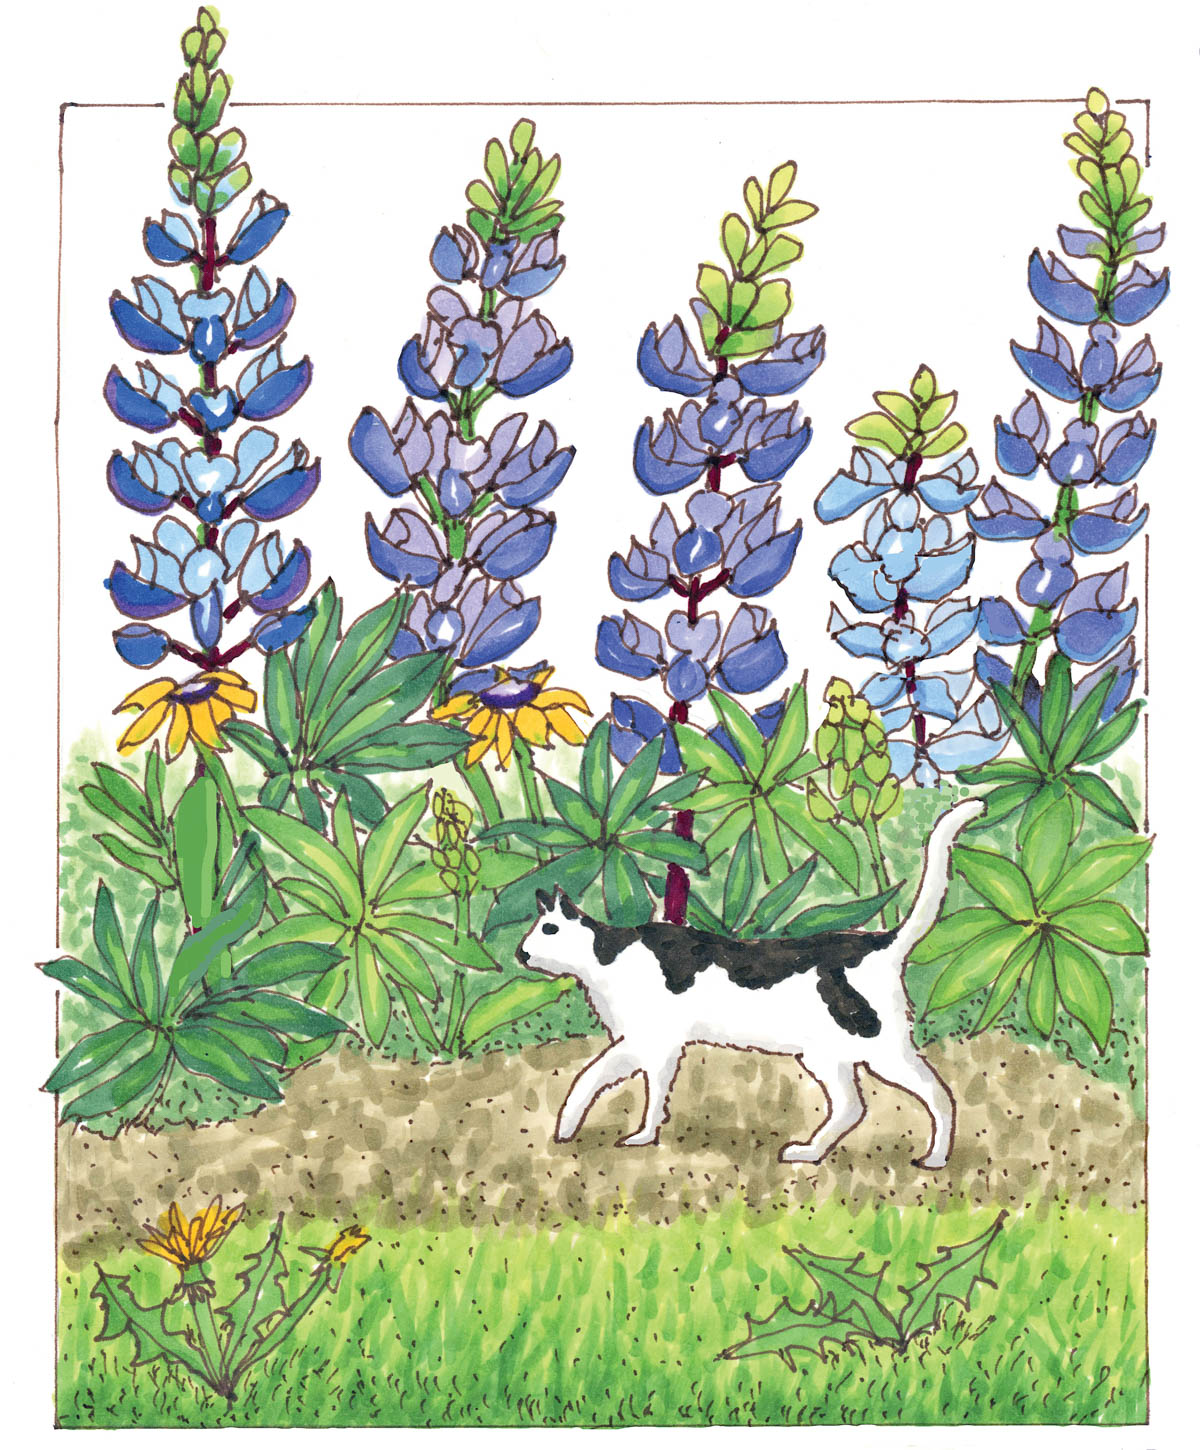 Spreading Beauty: The Story of the Lupine Lady